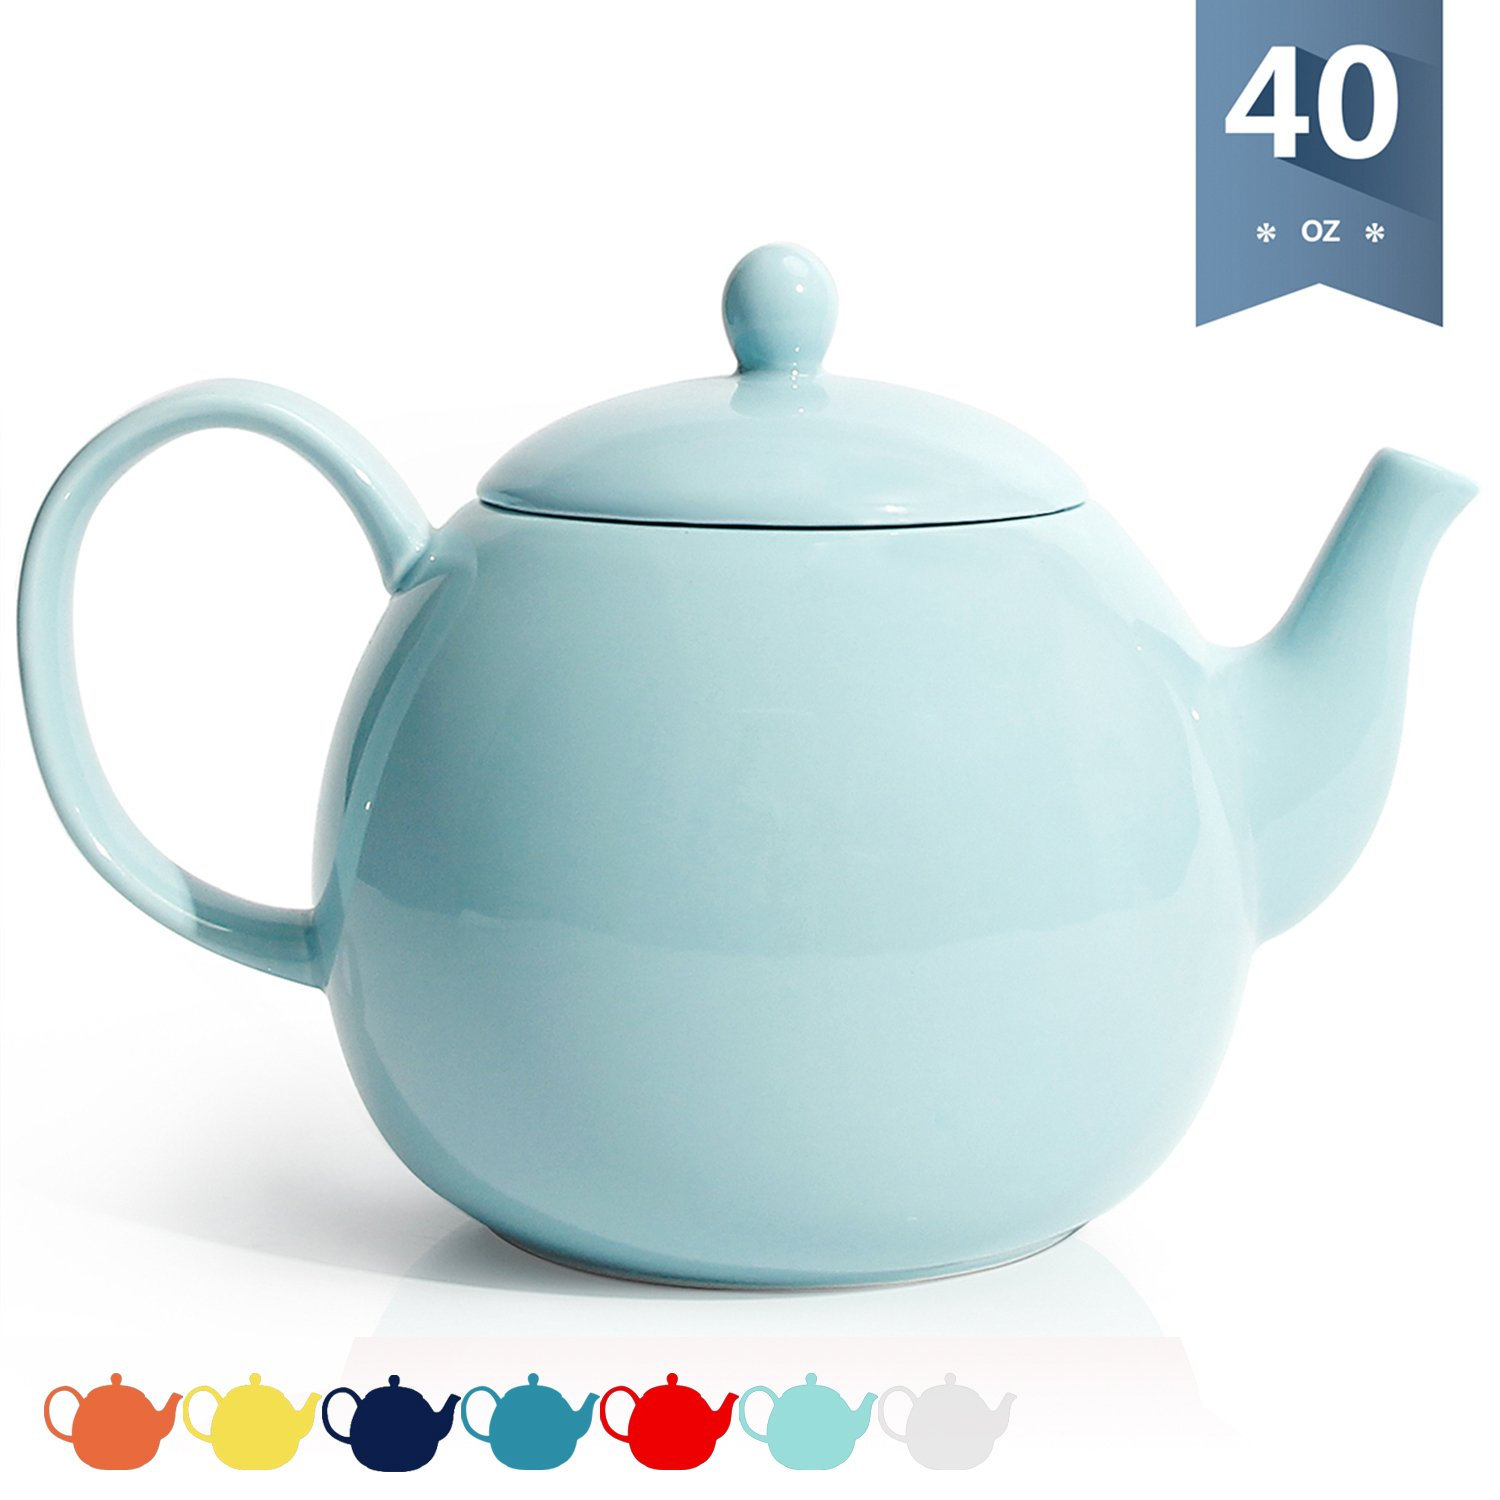 Sweese 2312 Porcelain Teapot, 40 Ounce Tea Pot - Large Enough for 5 Cups, Turquoise